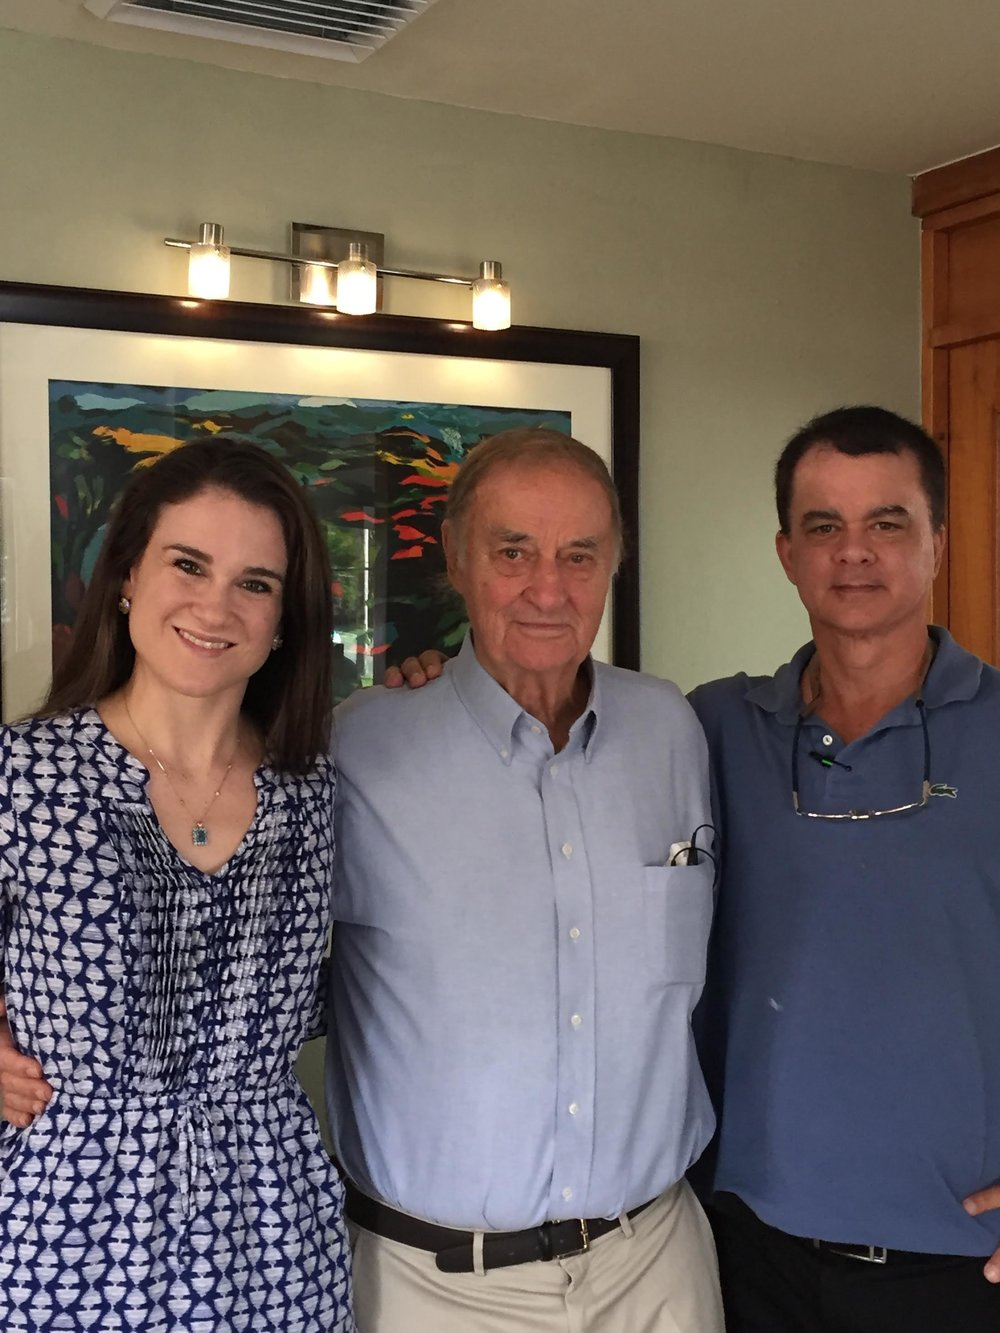 Dr. Victoria Keir with her grandfather, Dr. Hilt Tatum II, and her uncle, Dr. Hilt Tatum III.  This photo was taken courtesy of Mrs. Scarlett Tatum at the Advanced Dental Implant Institute AAID Maxicourse in San Juan, Puerto Rico.